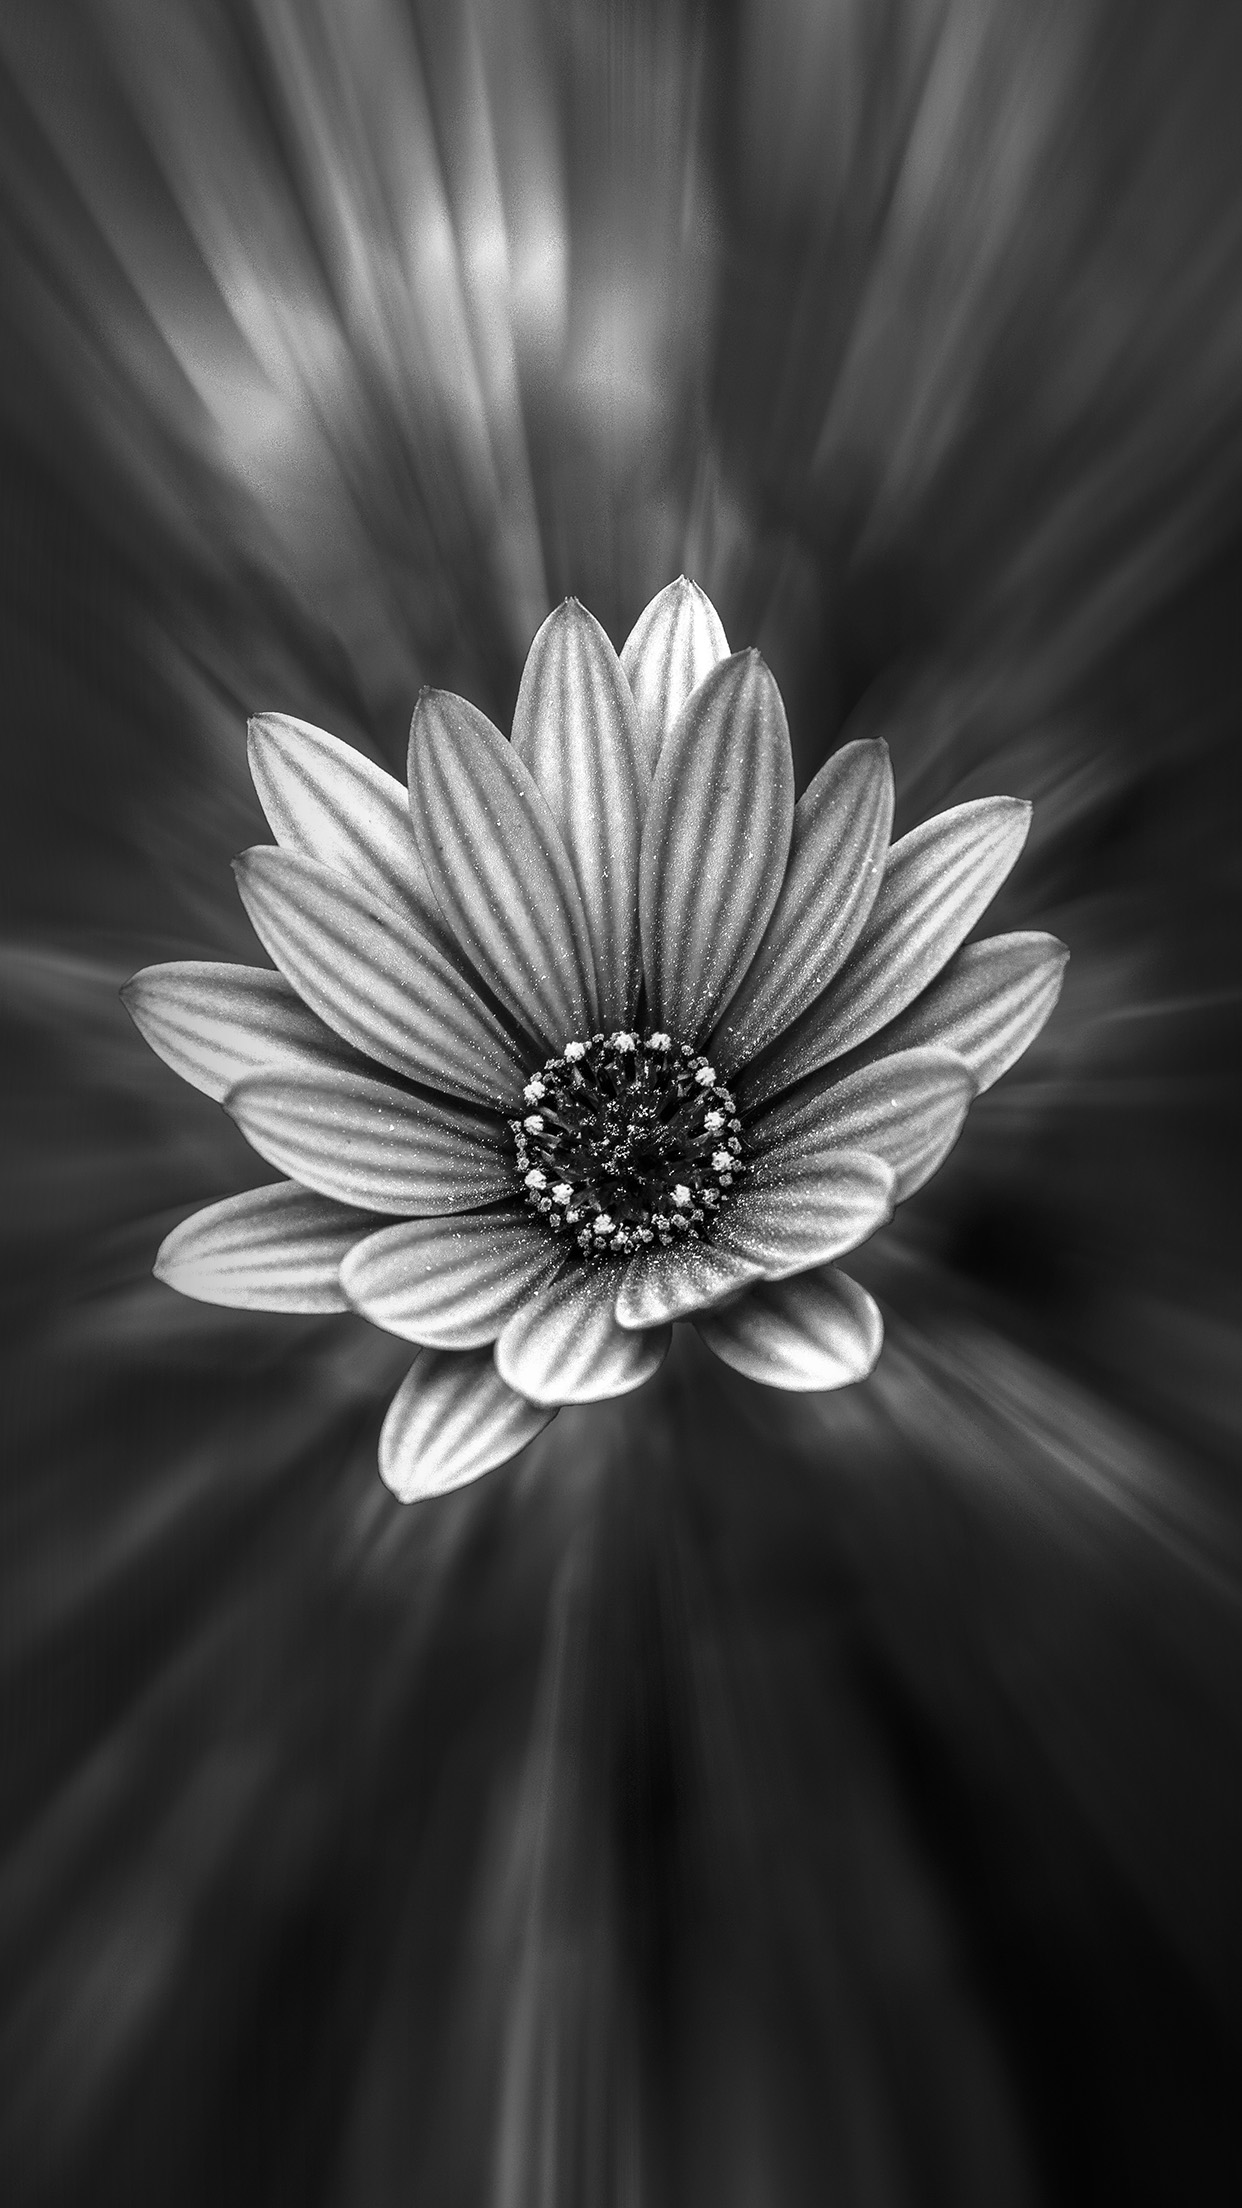 Iphone7papers Com Iphone7 Wallpaper Ng48 Flower Dark Black Nature Bw